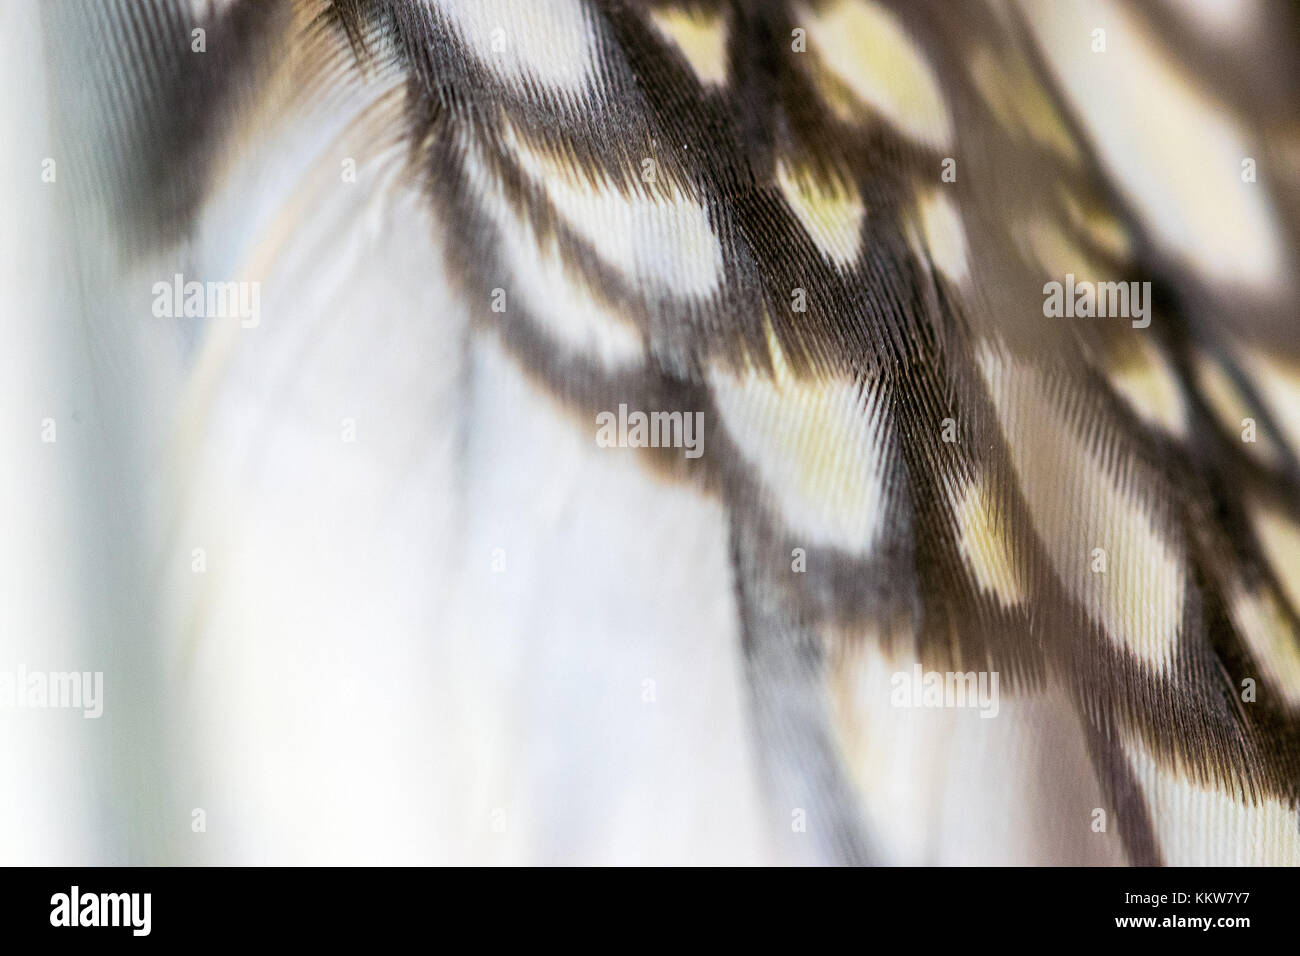 Plumage Abstract Bird Wing Stock Photos & Plumage Abstract ...